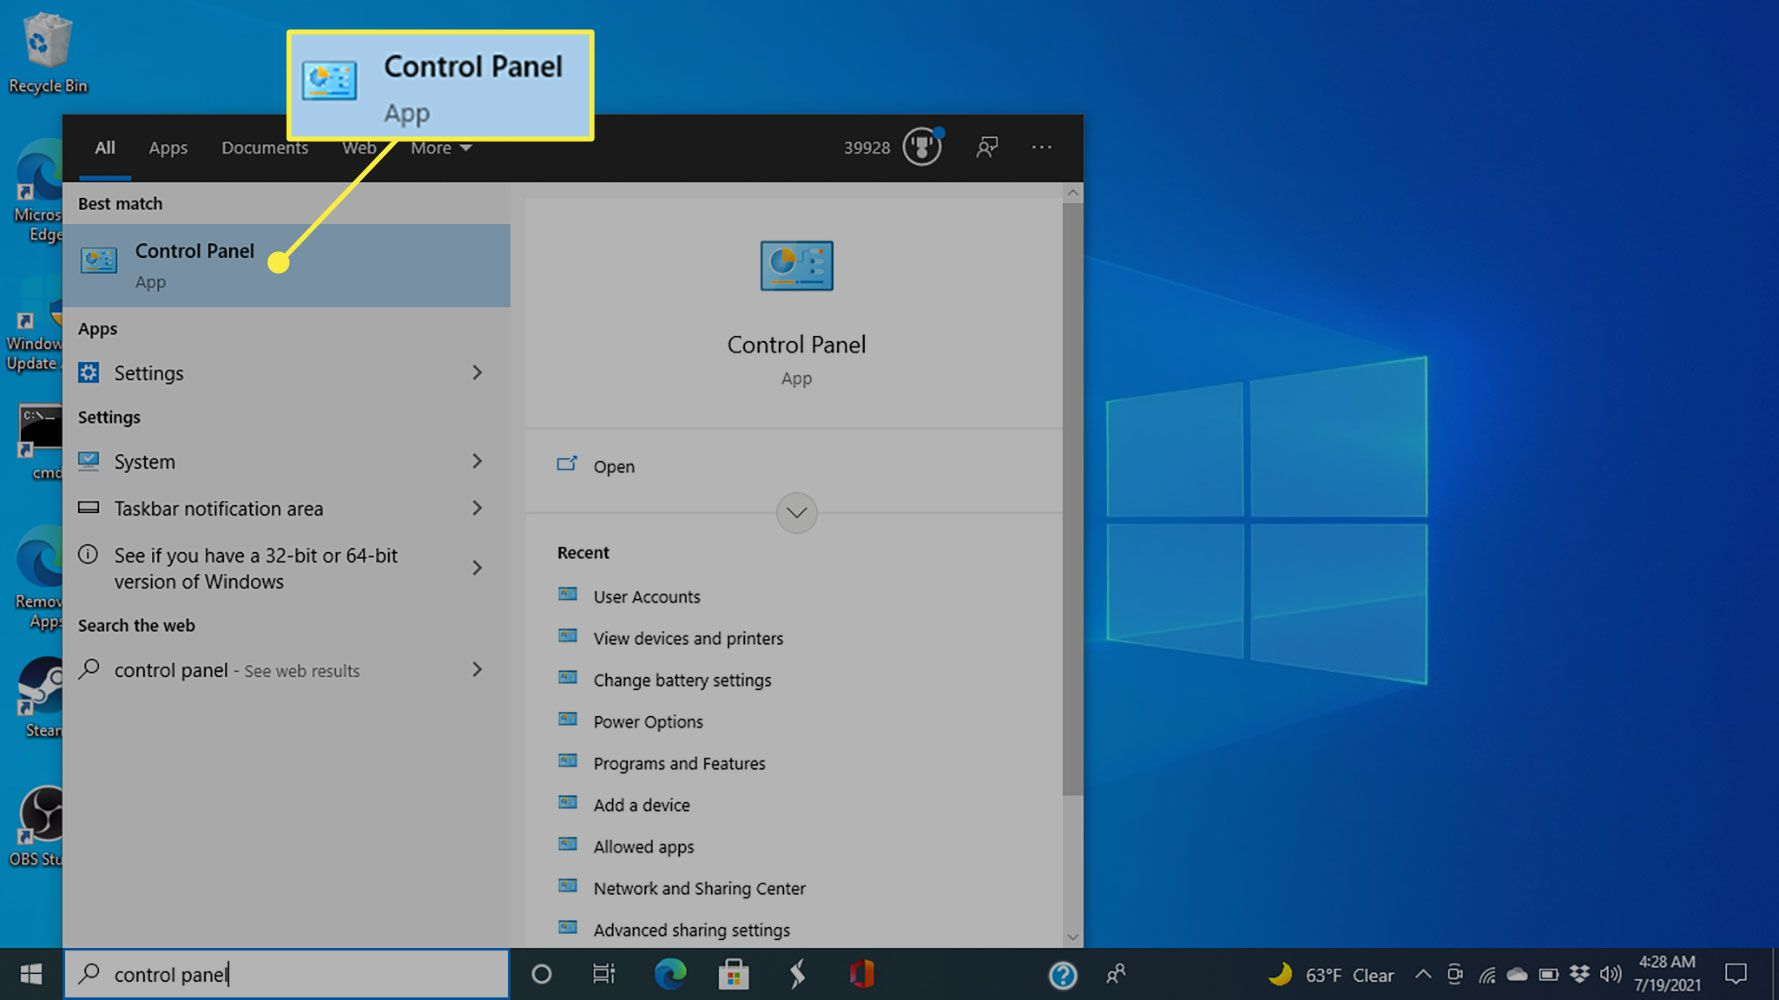 Control Panel in Windows 10 search results